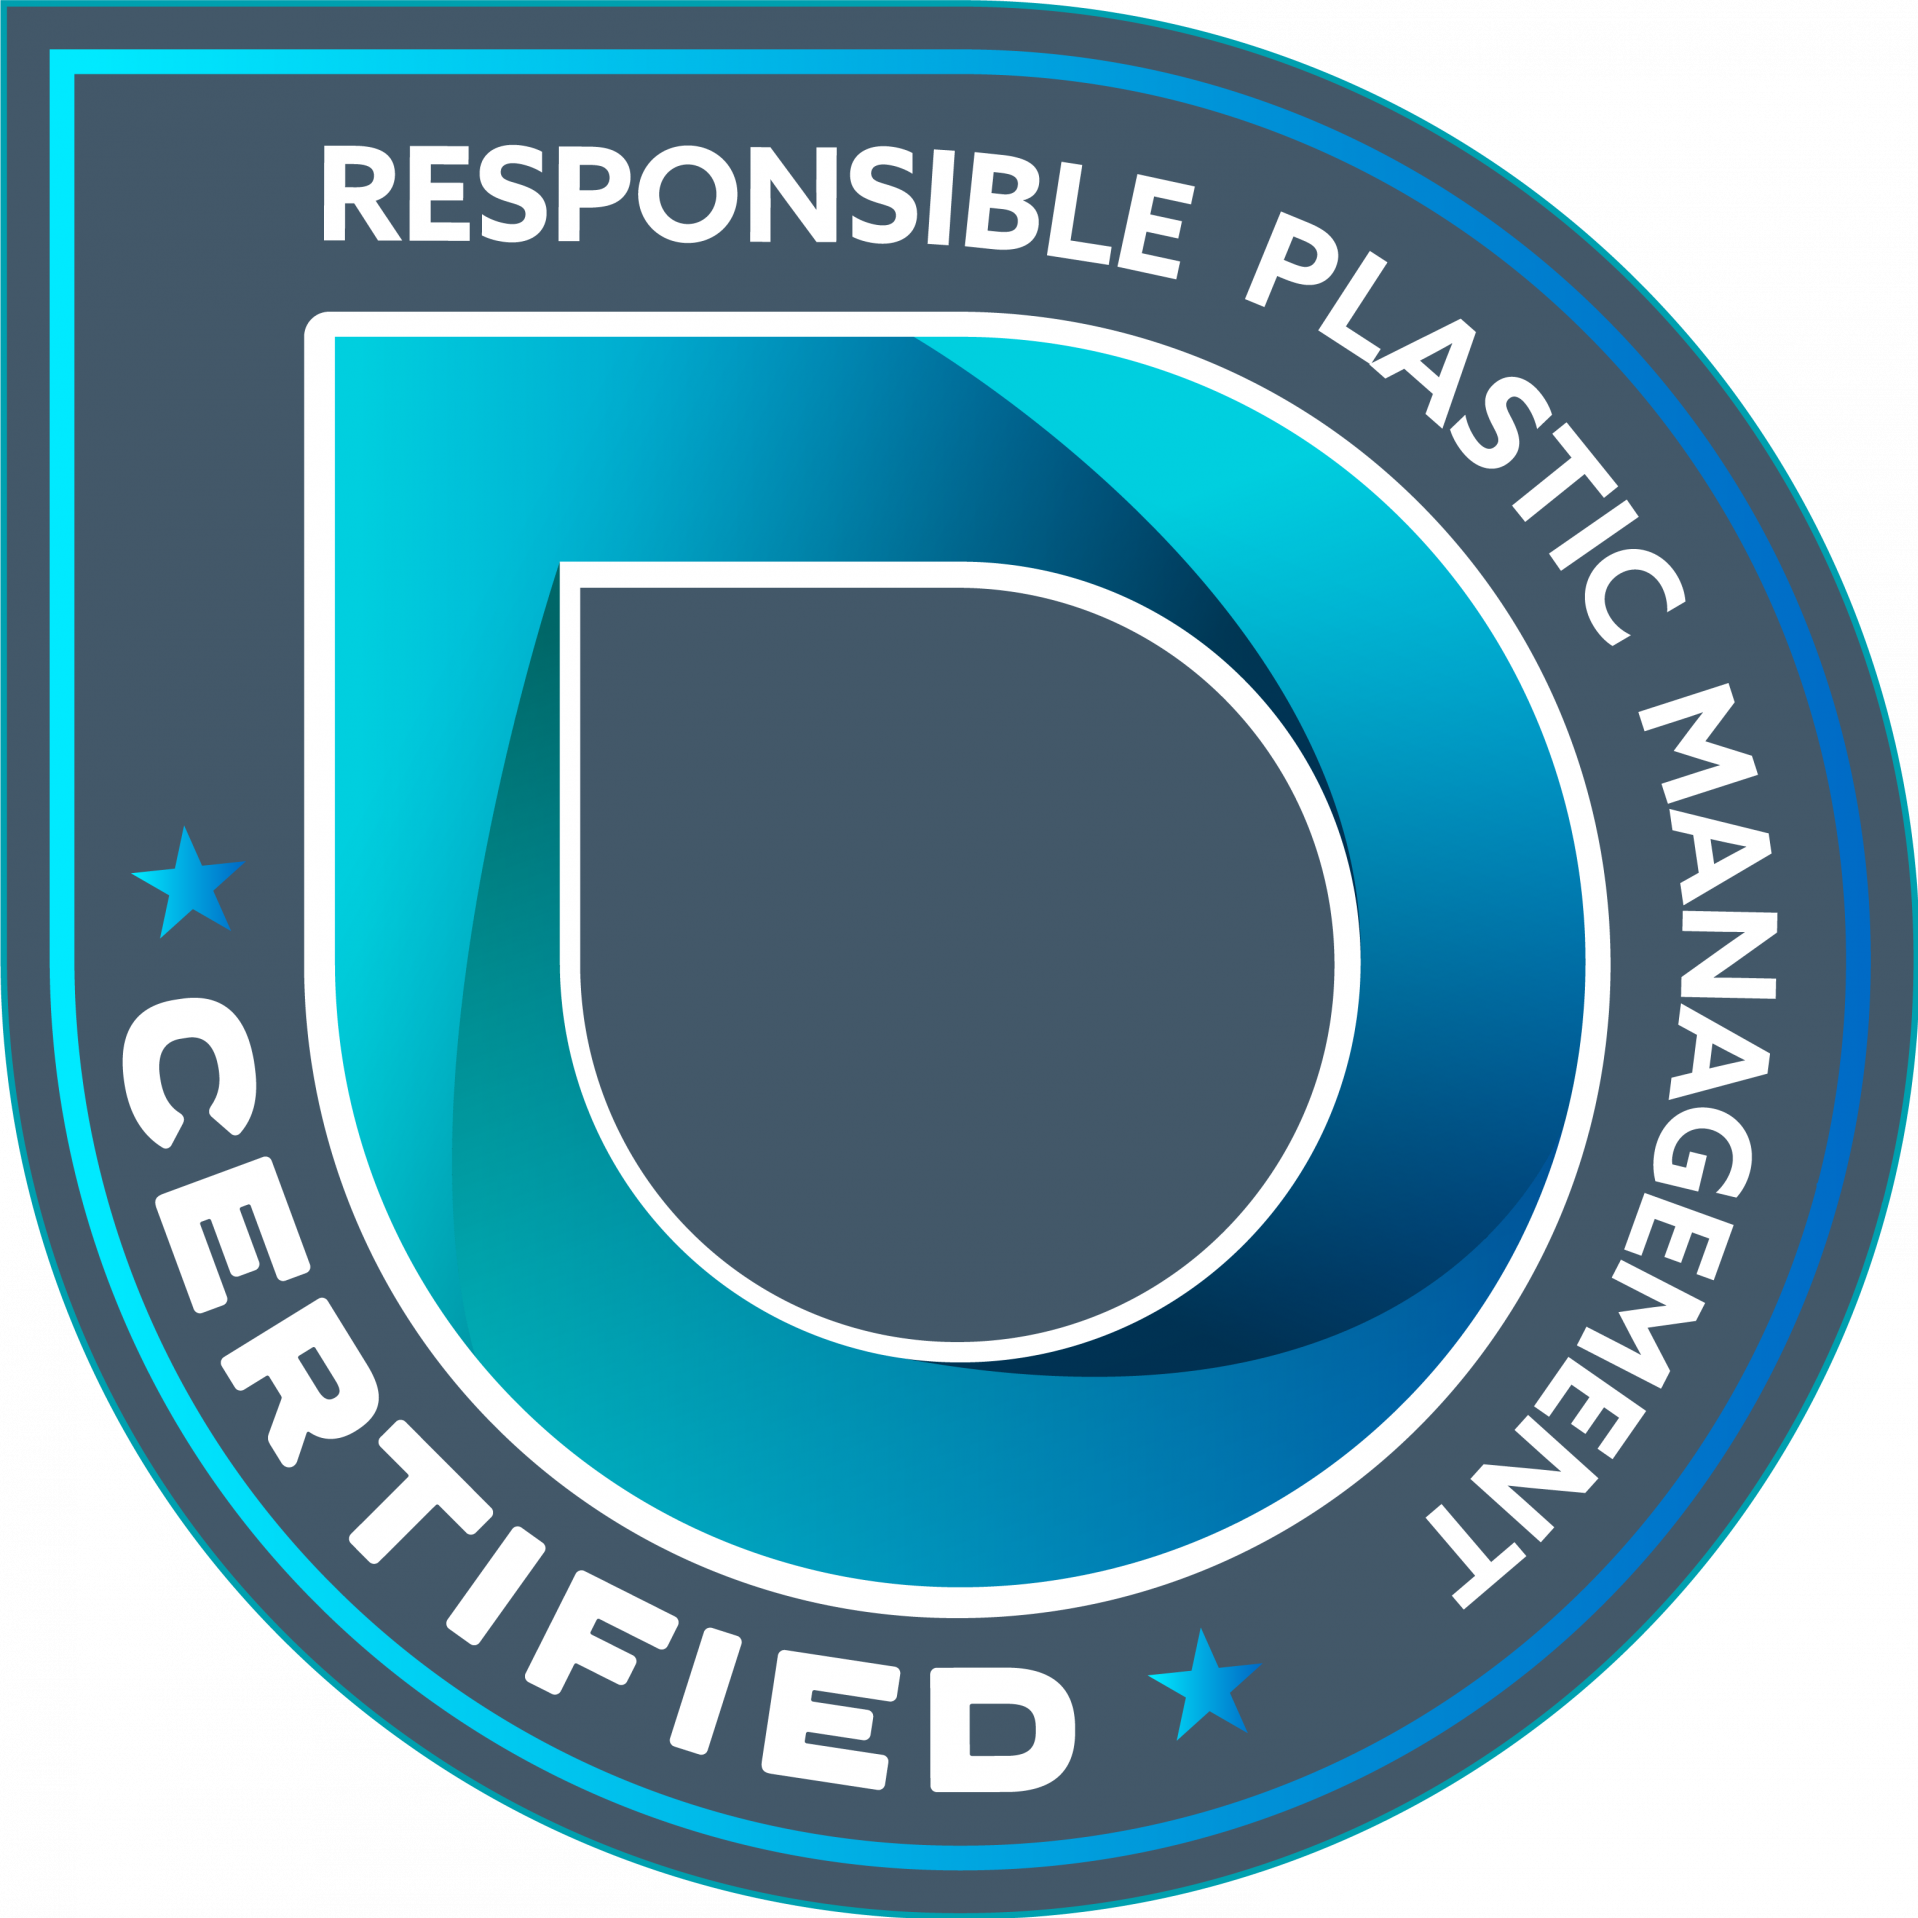 RPM - Responsible Plastic Management